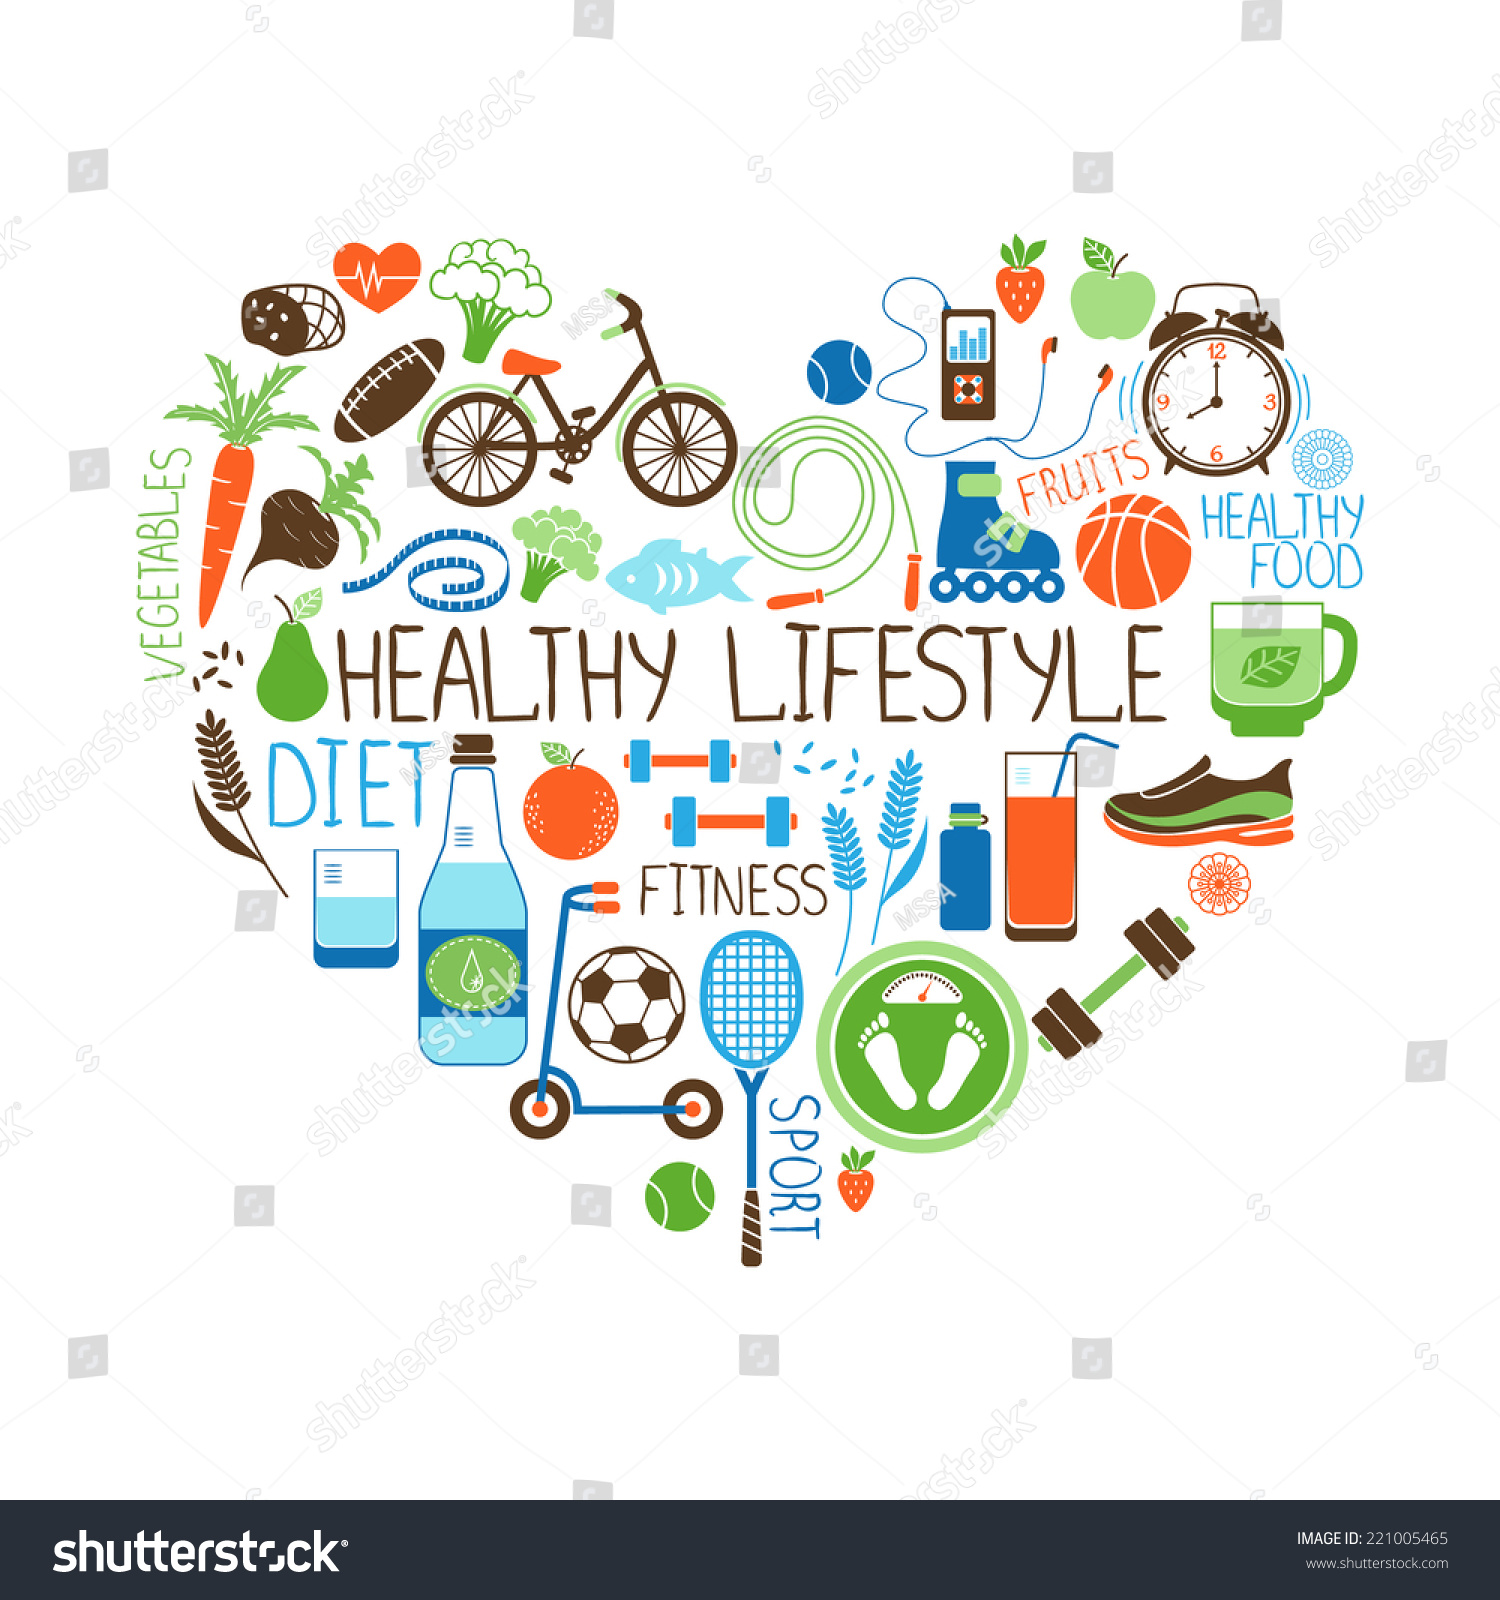 Simple Rules For A Healthy Life Share And Spread The: Healthy Lifestyle